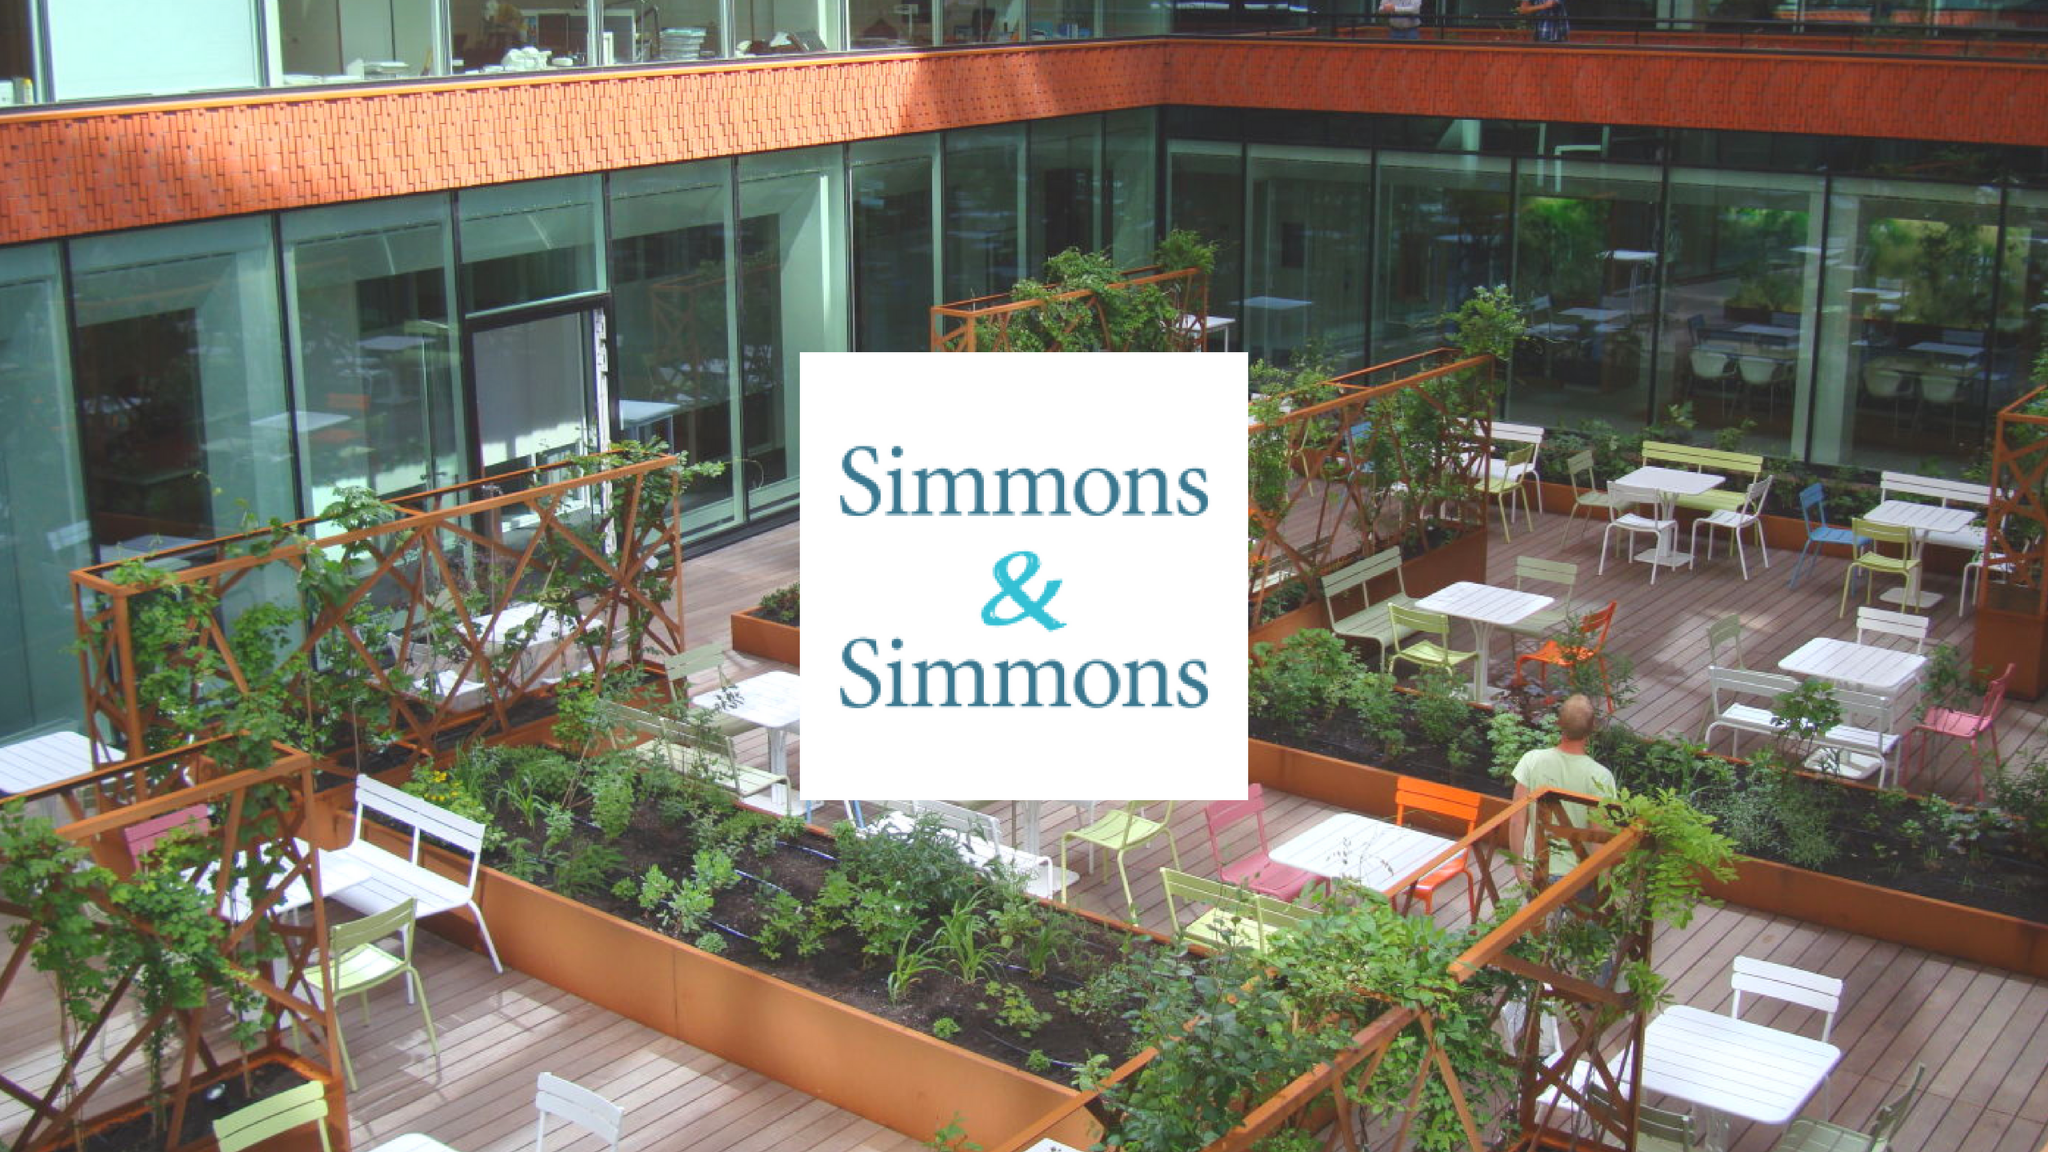 Simmons & Simmons Law Firm Best in the World UpSlide